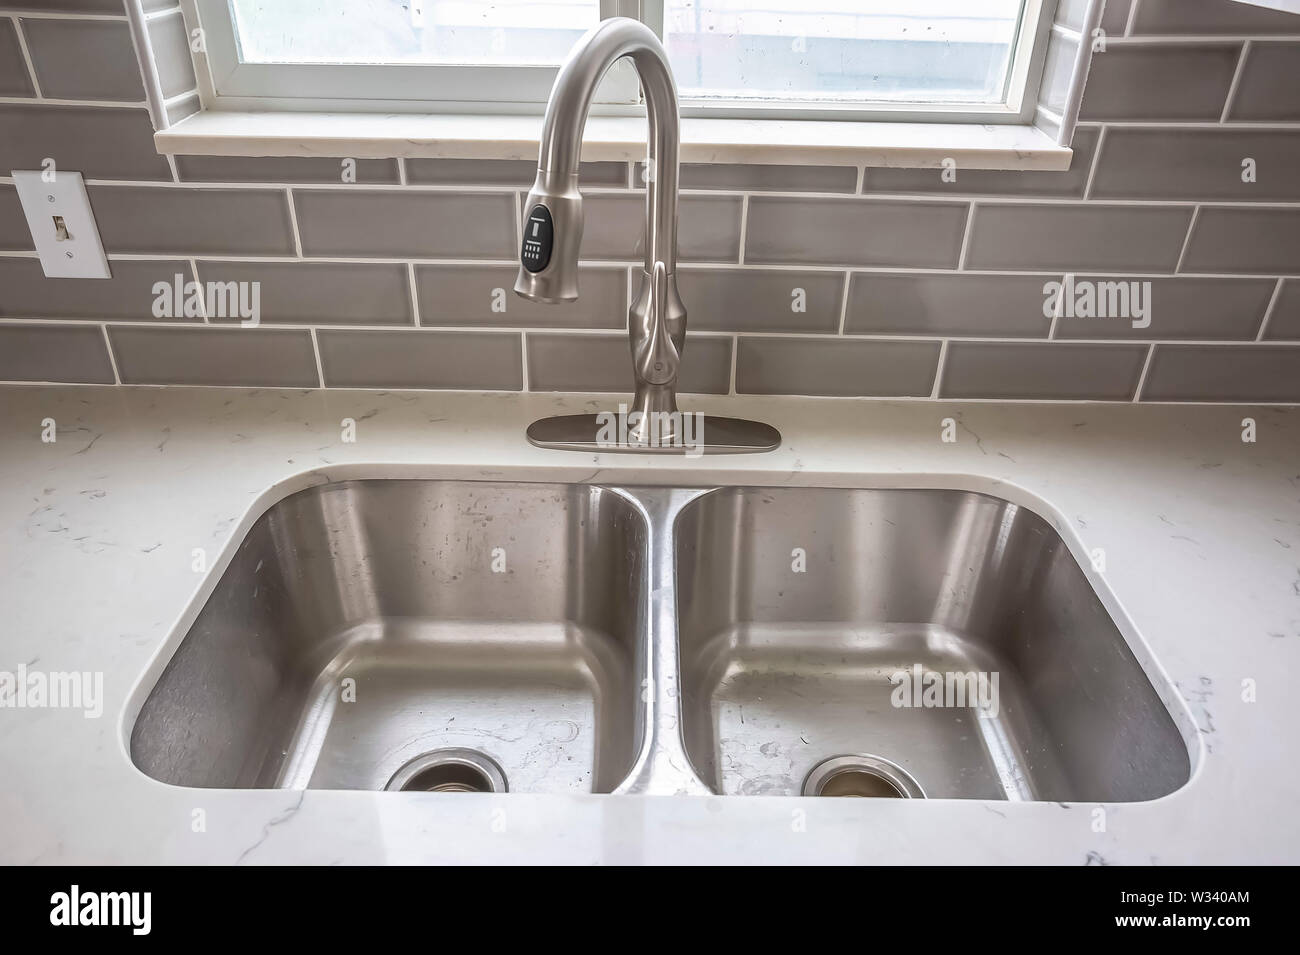 Double Bowl Stainless Steel Sink Undermounted On The White Kitchen Countertop Tiled Wall And Window Can Be Seen Behind The Faucet Stock Photo Alamy